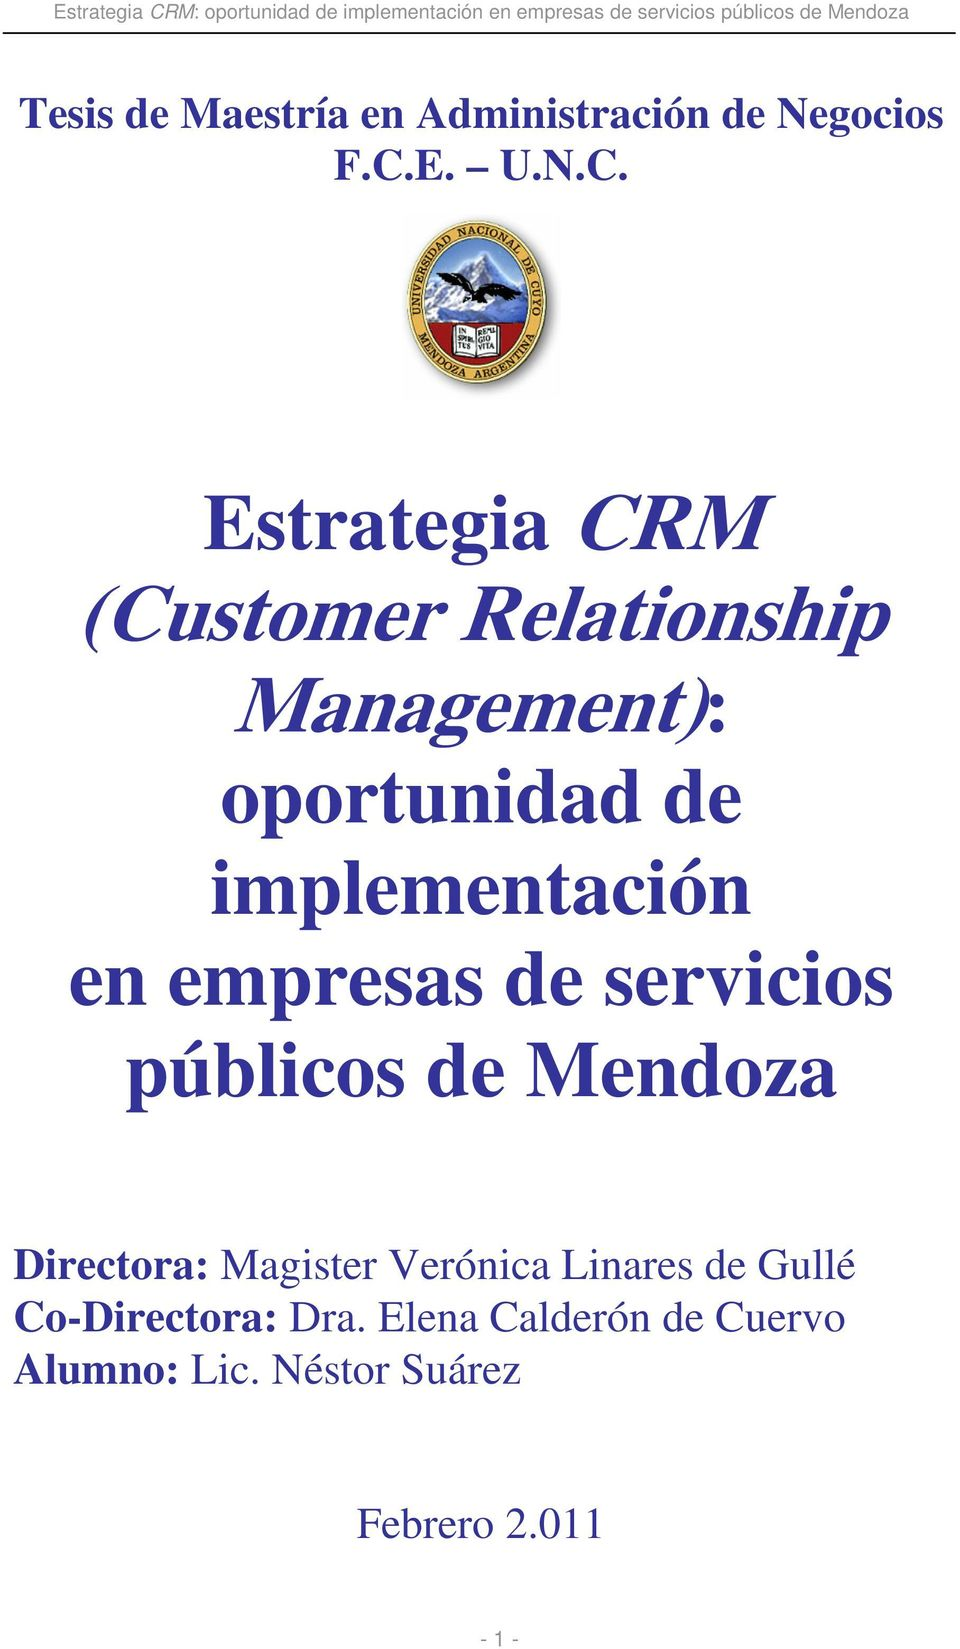 Estrategia CRM (Customer Relationship Management): oportunidad de implementación